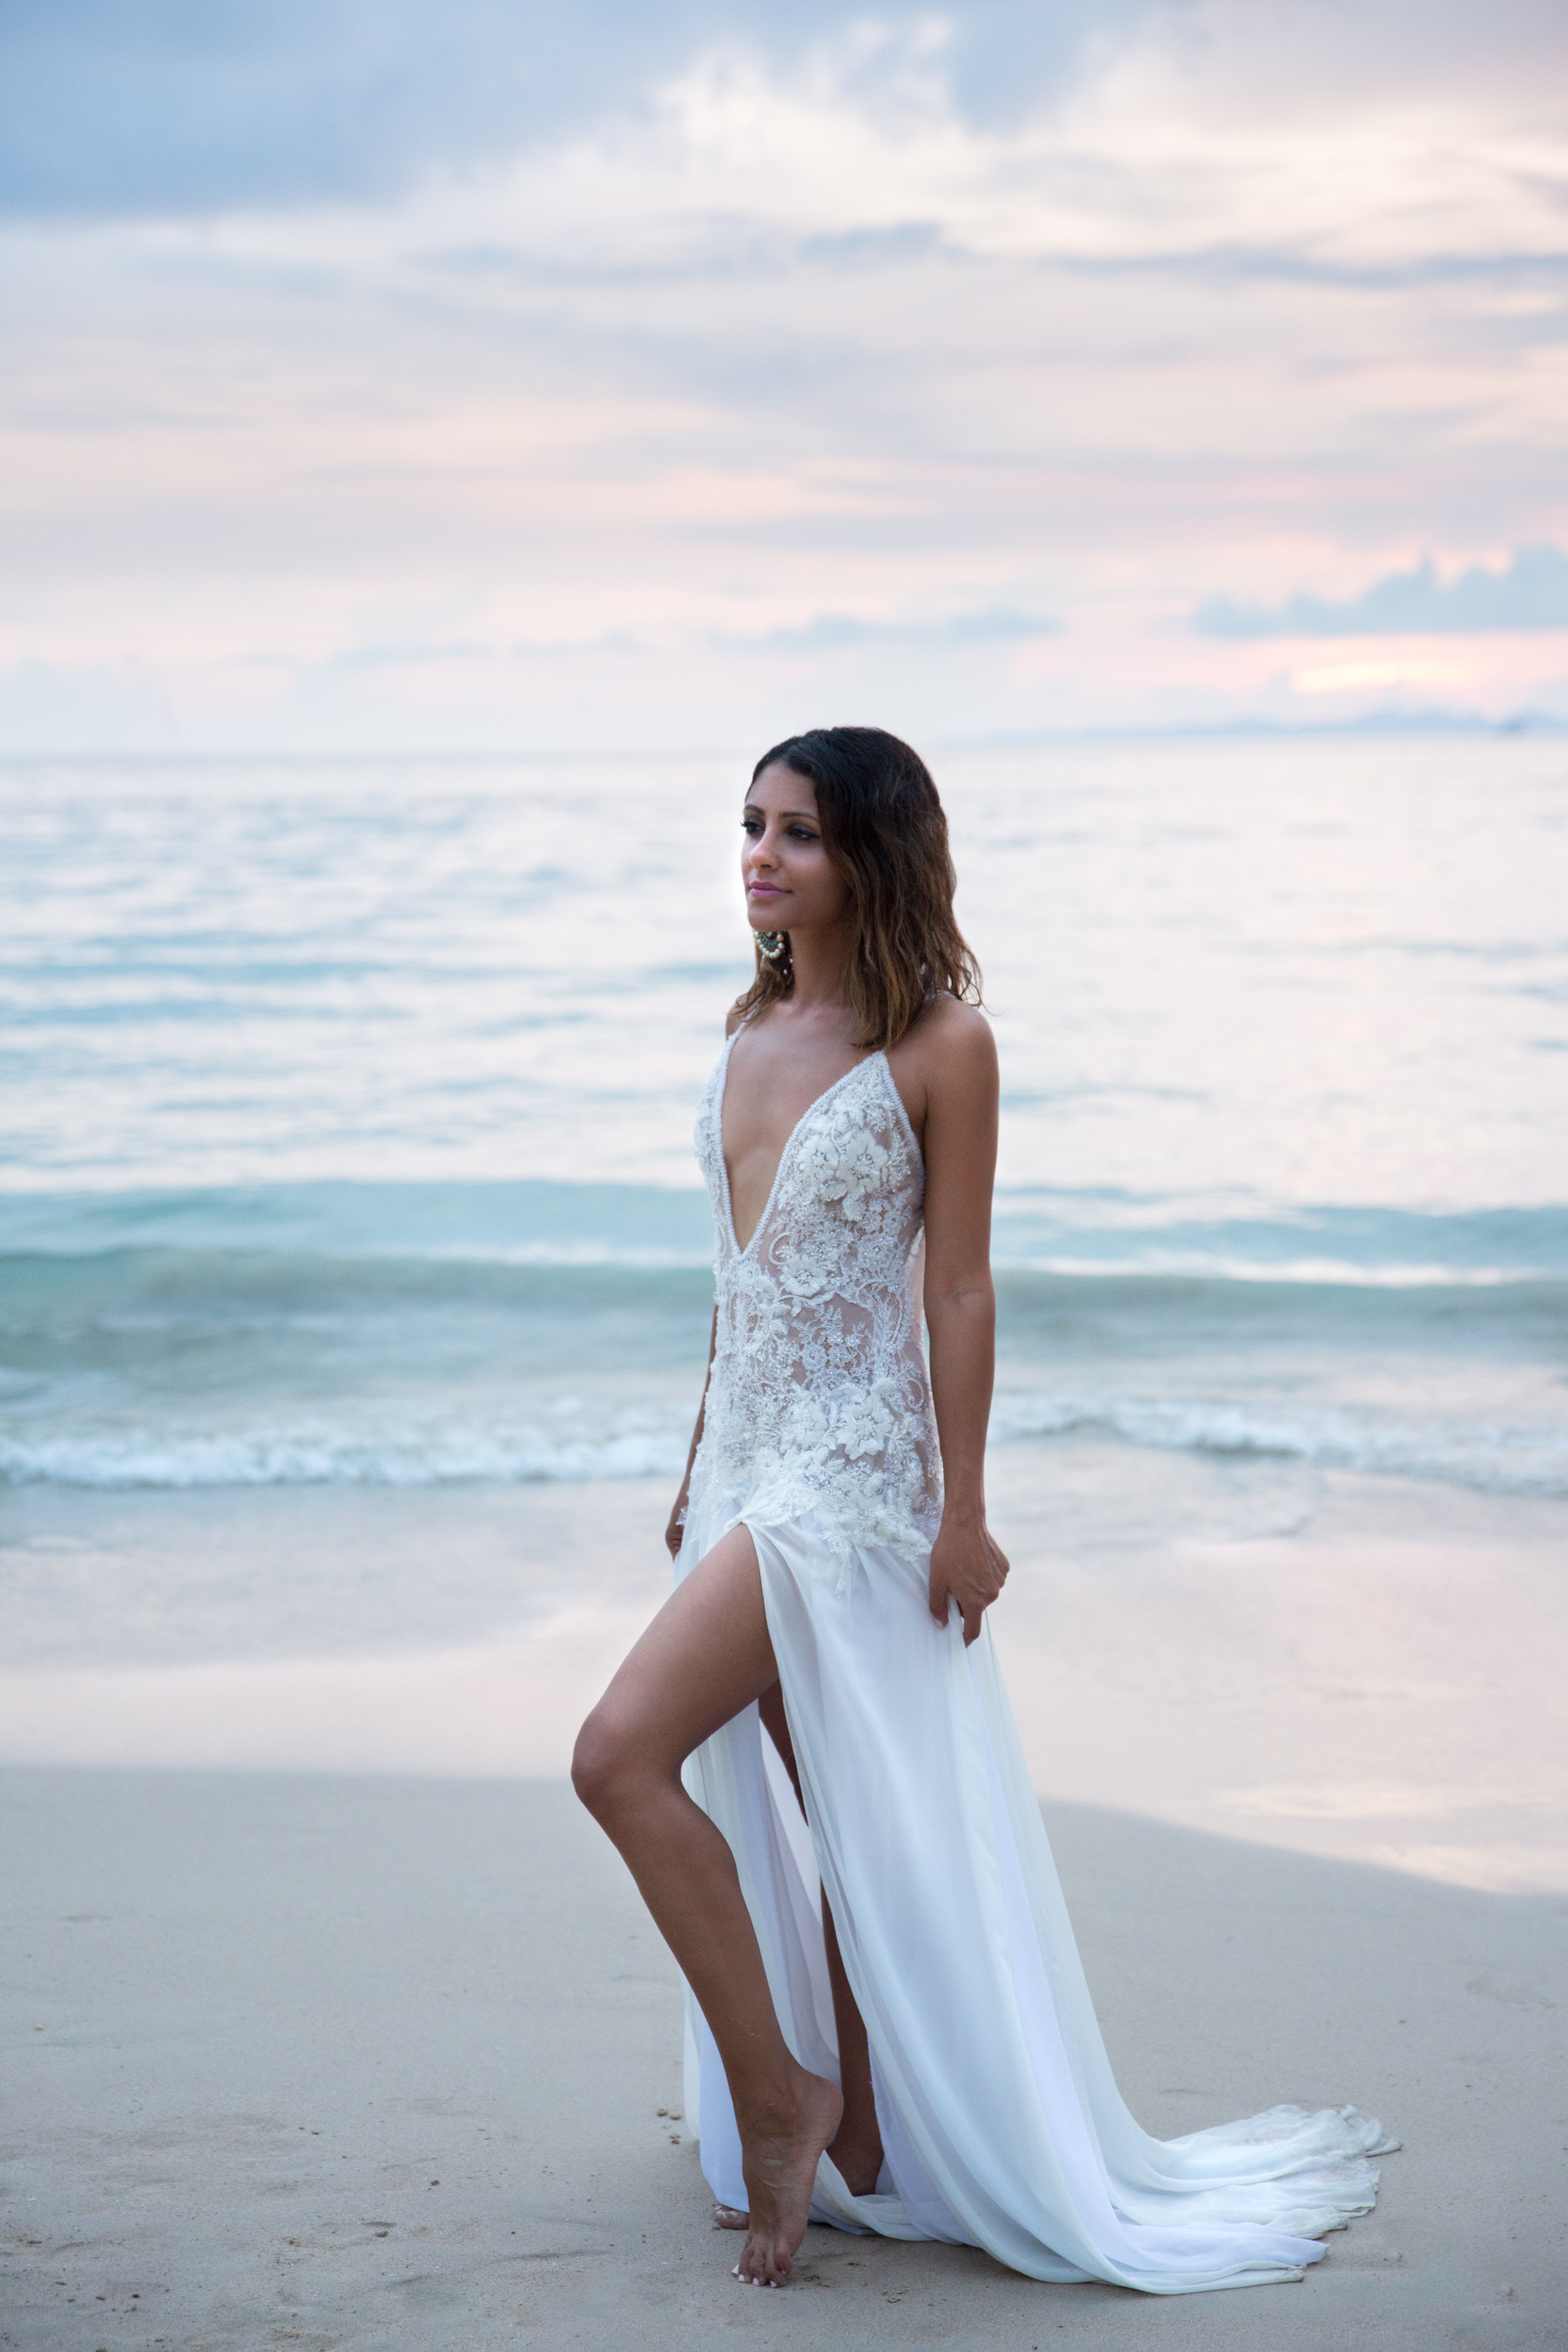 Bride Dress Railay Beach Thailand Krabi Zsuzsi Pal Photography Wedding Sunset